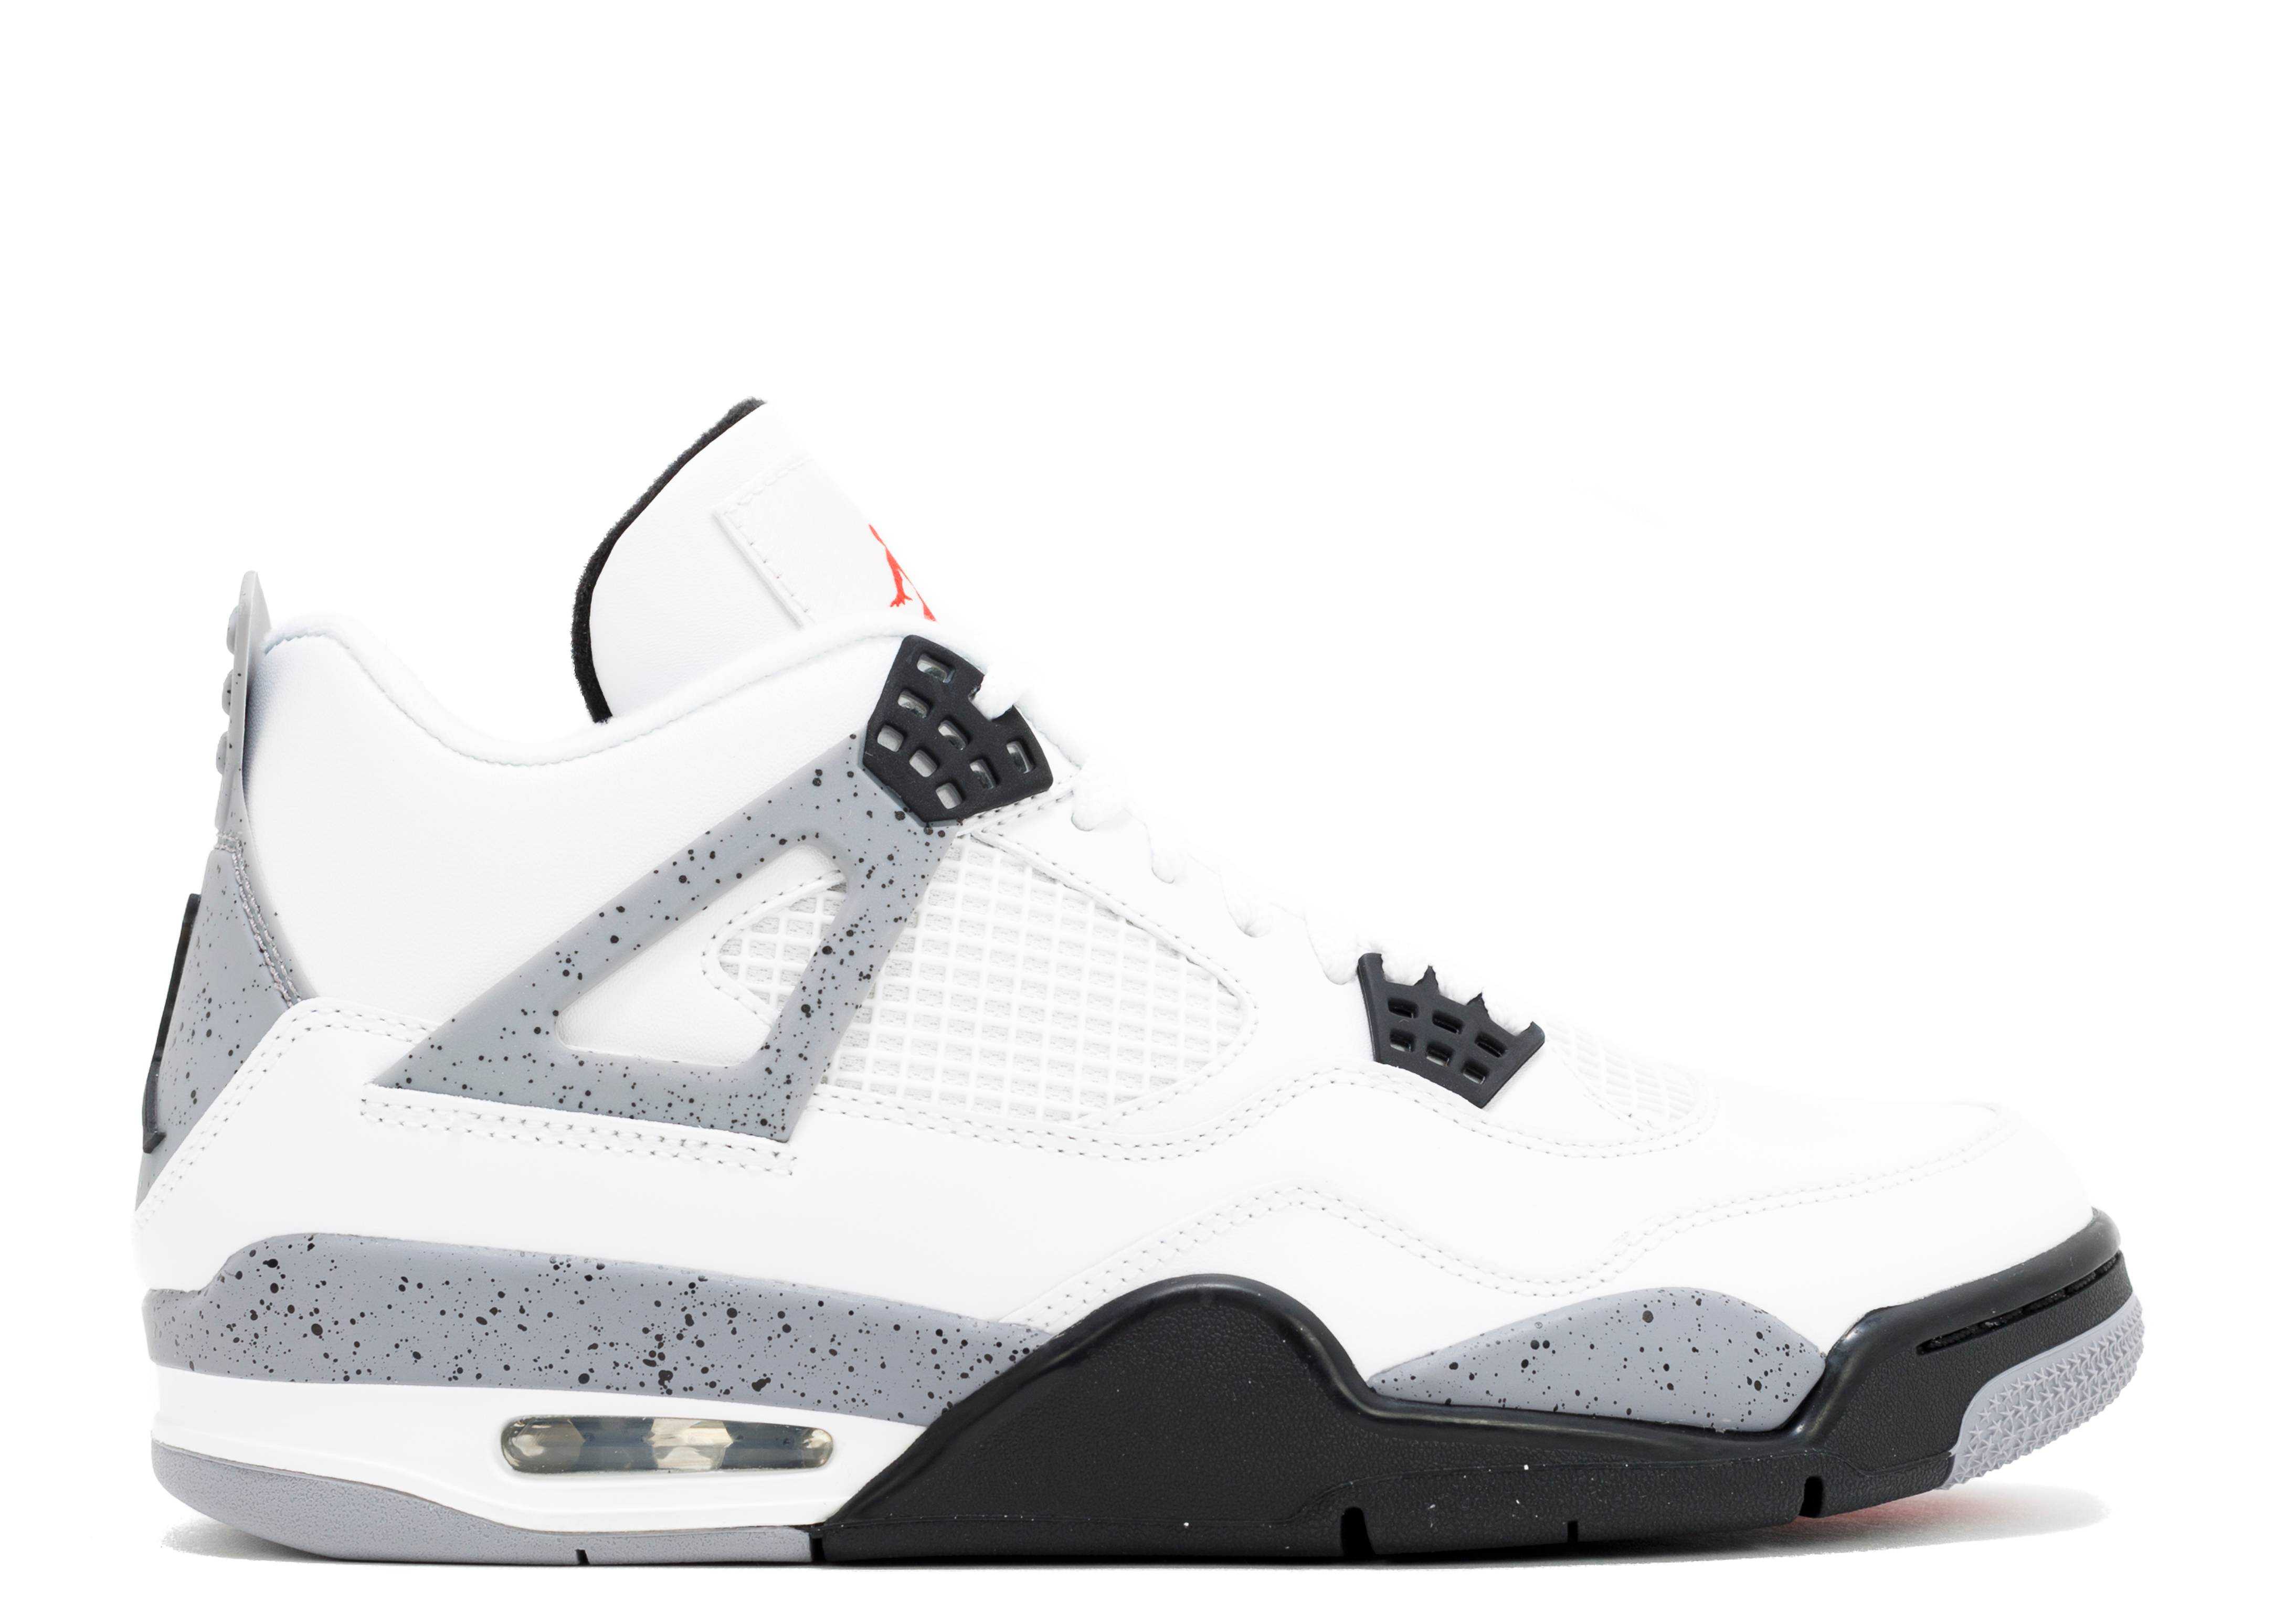 Nike Air Jordan 4 White Cement 2012